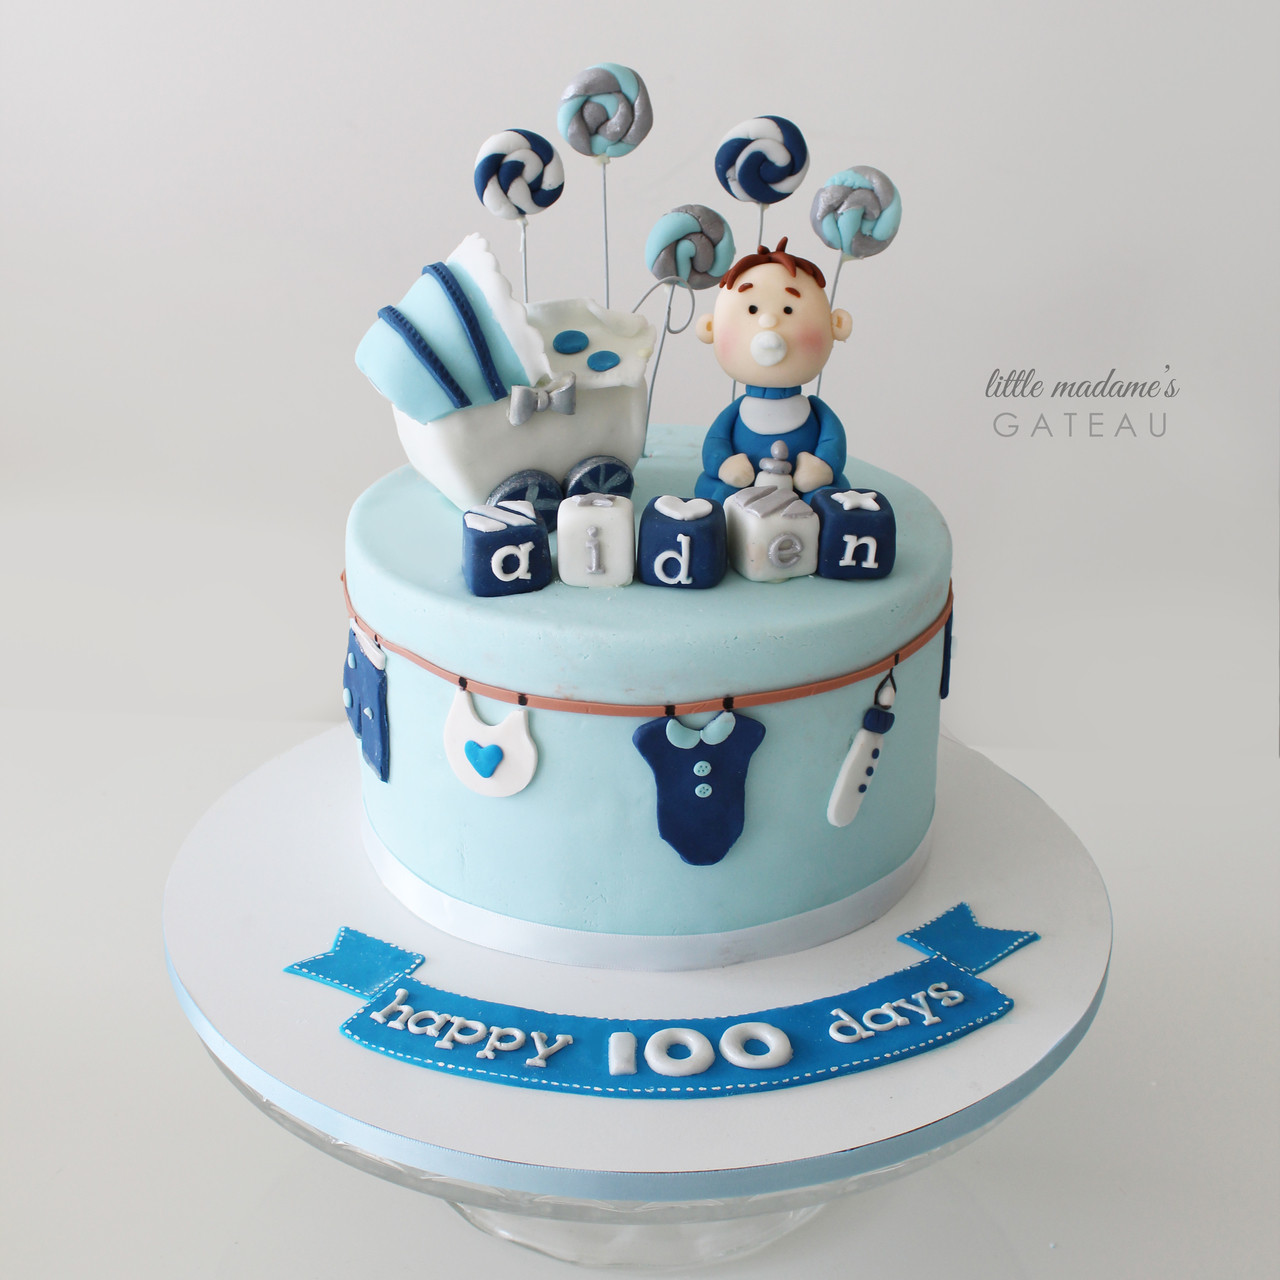 Astonishing Baby And Prams 100 Days Celebration Cake Funny Birthday Cards Online Aboleapandamsfinfo